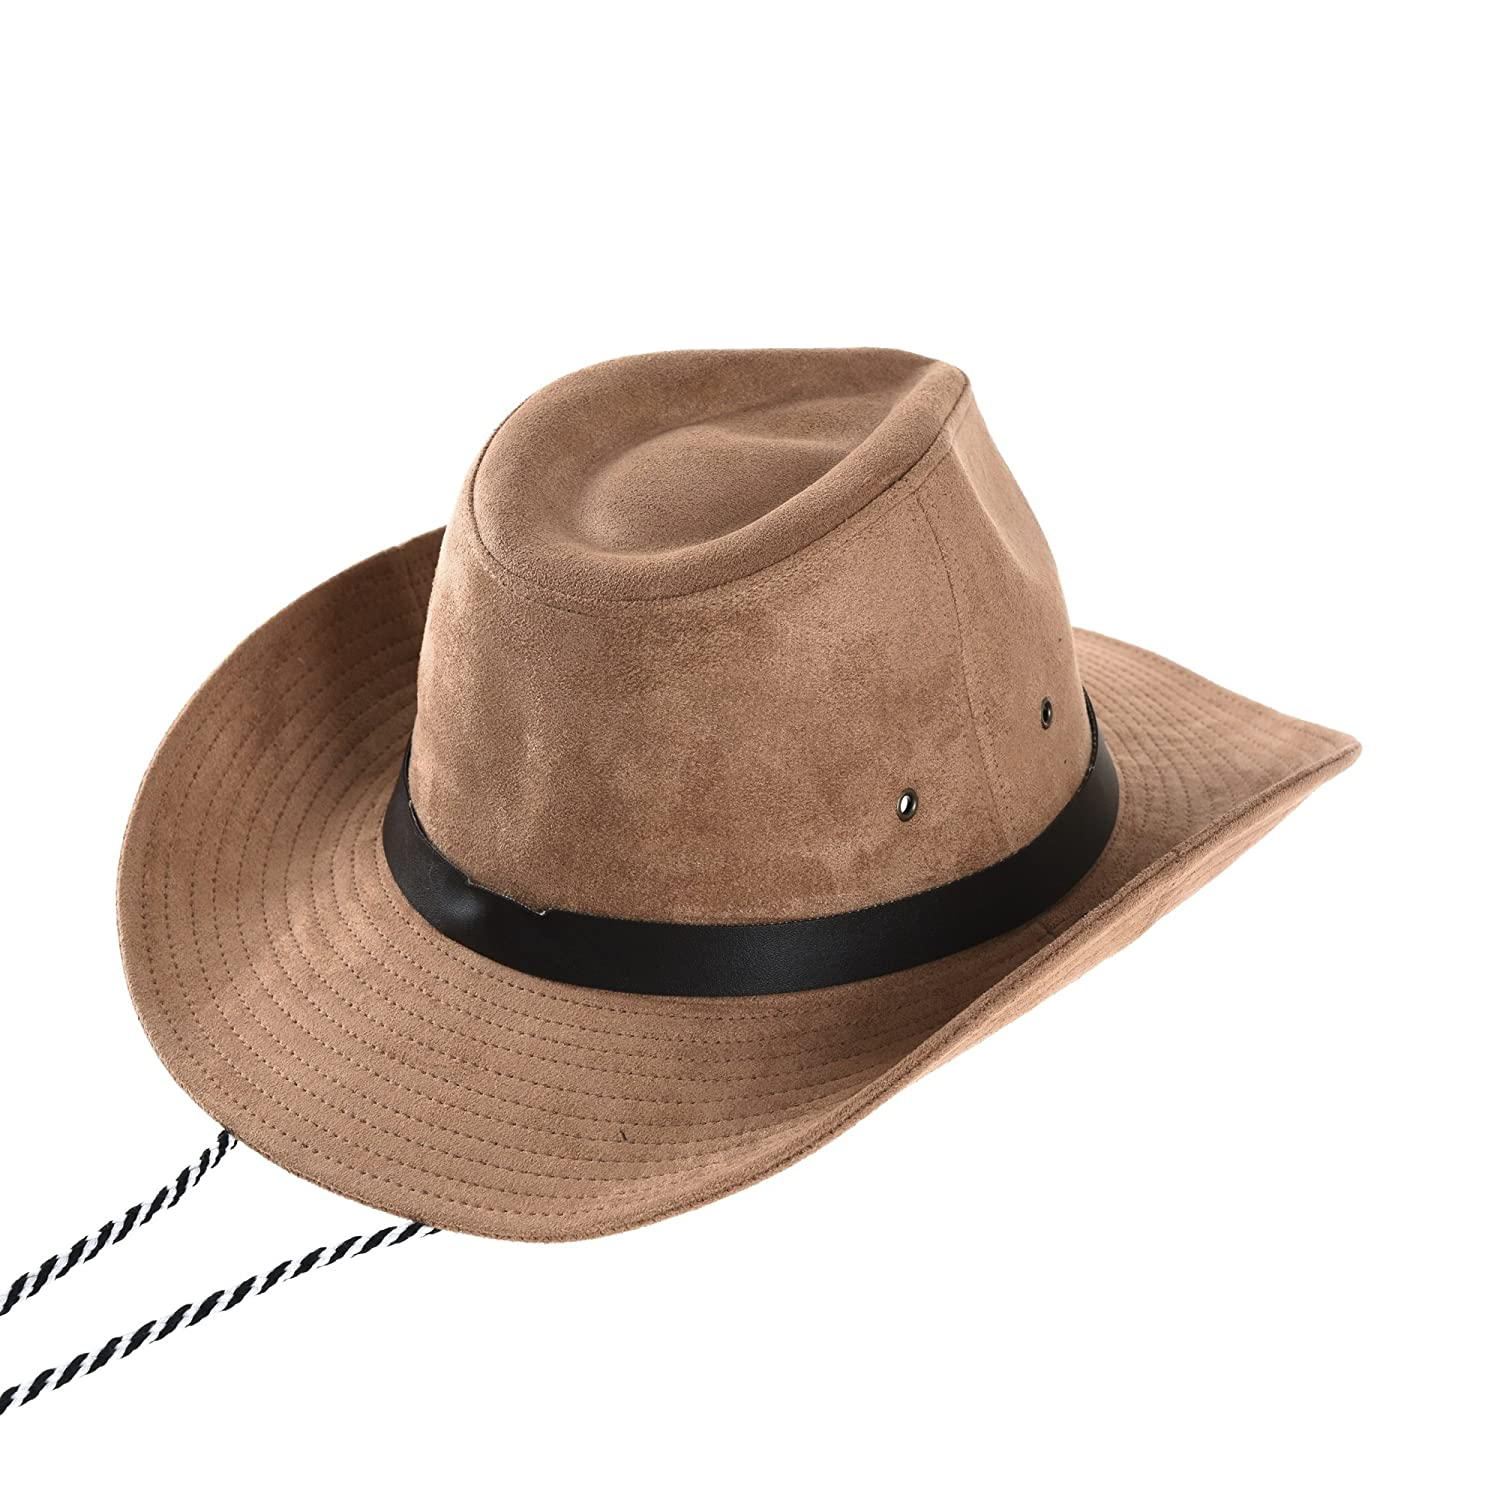 WITHMOONS Cowboy Cappello a tesa larga Suede Indiana Jones Hat Outback Hat  Fedora With Cord CD8858 (Beige)  Amazon.it  Abbigliamento 1e5a79dc44cb